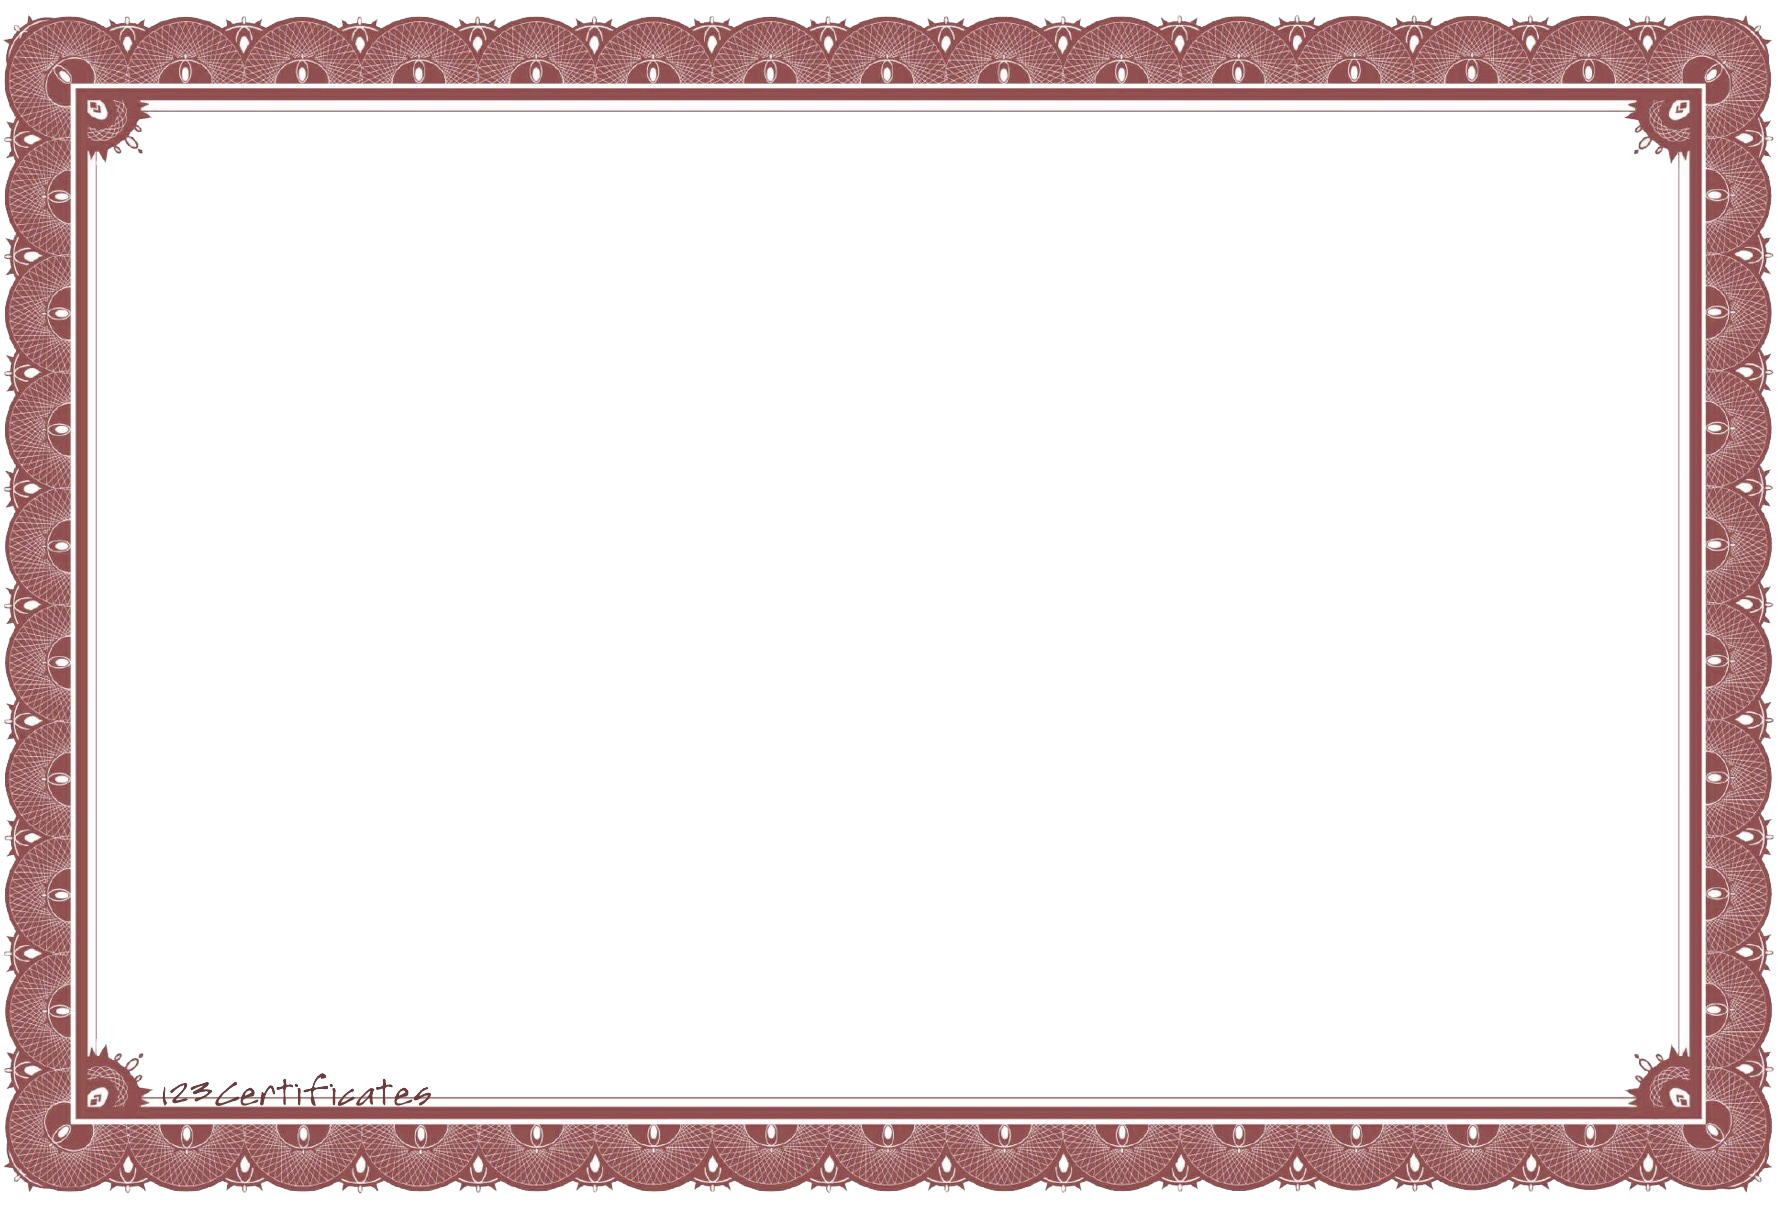 Transparent templates photo frame. Certificate template png images